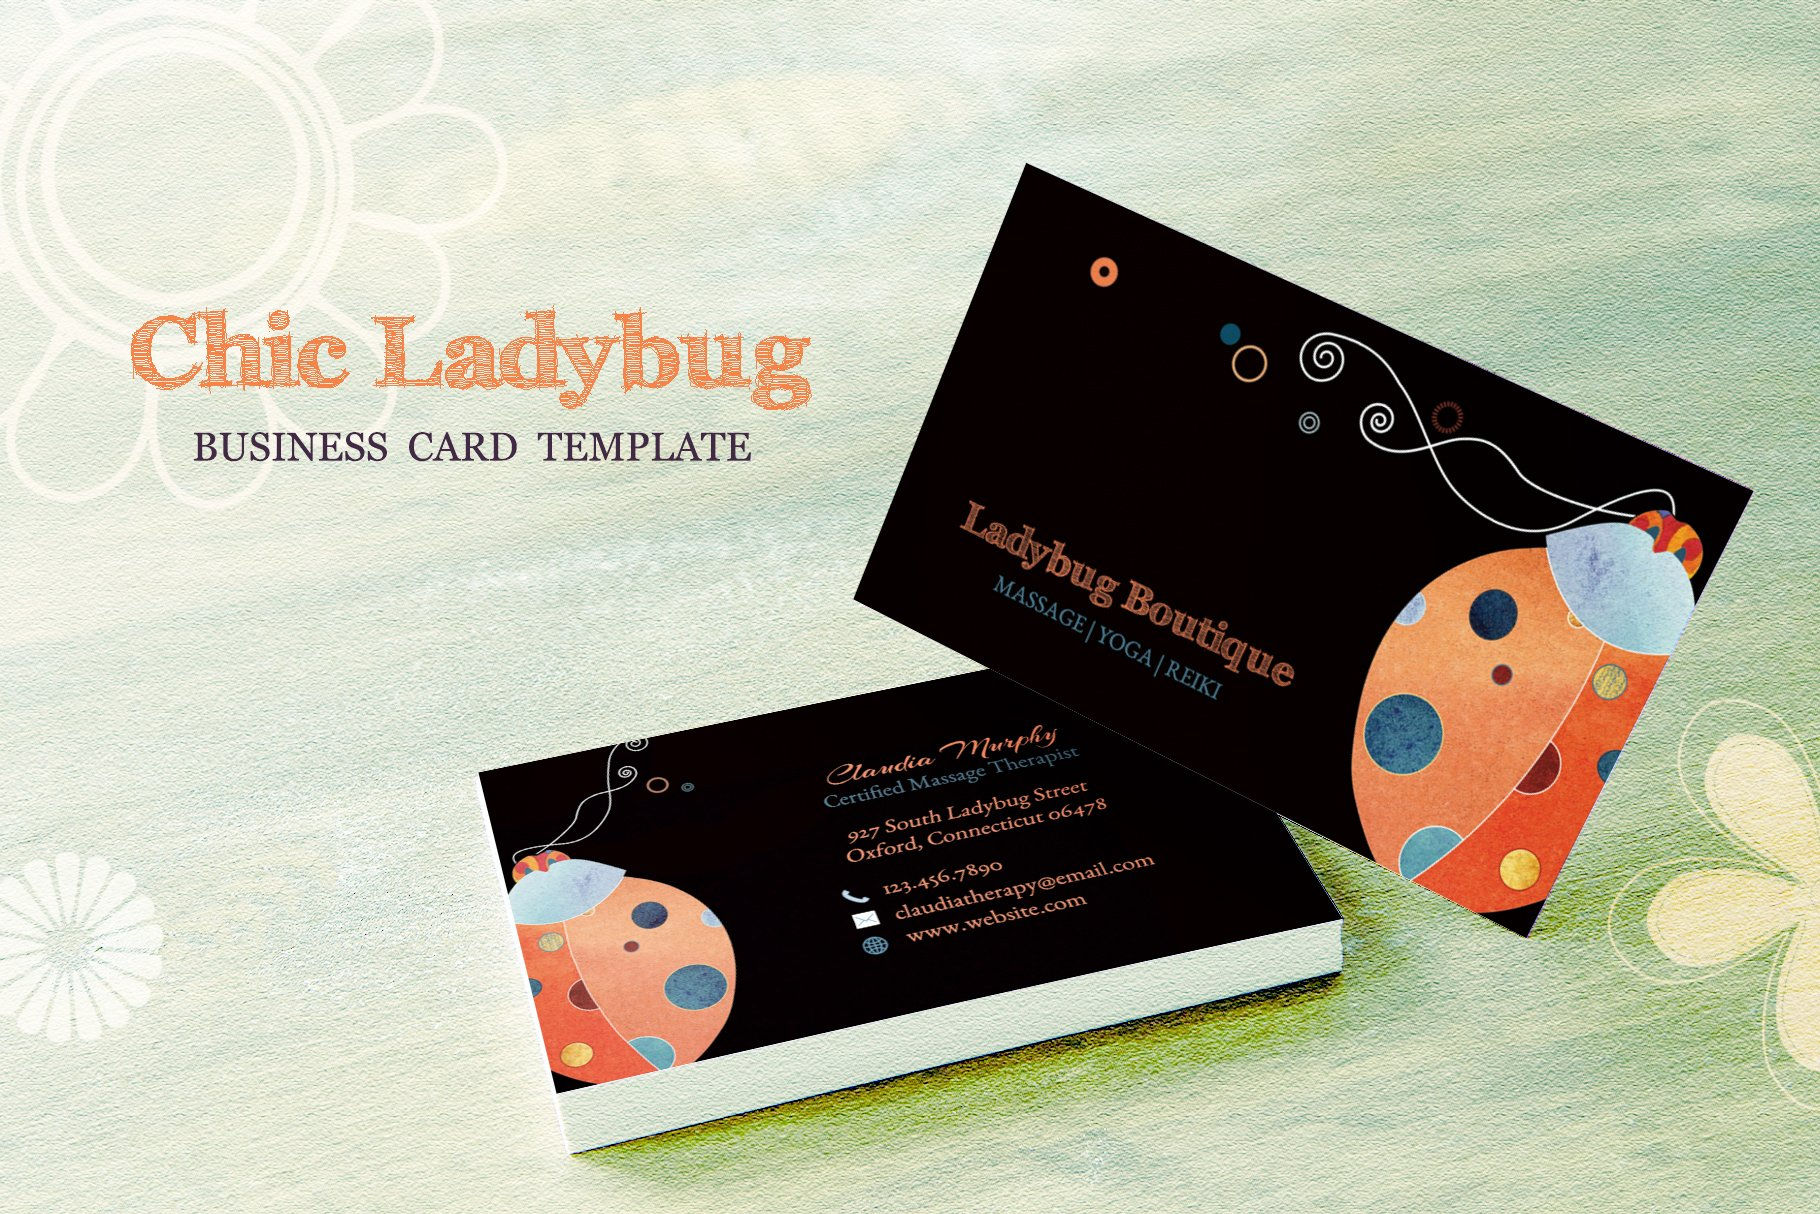 Ladybug business card template business card templates creative ladybug business card template business card templates creative market colourmoves